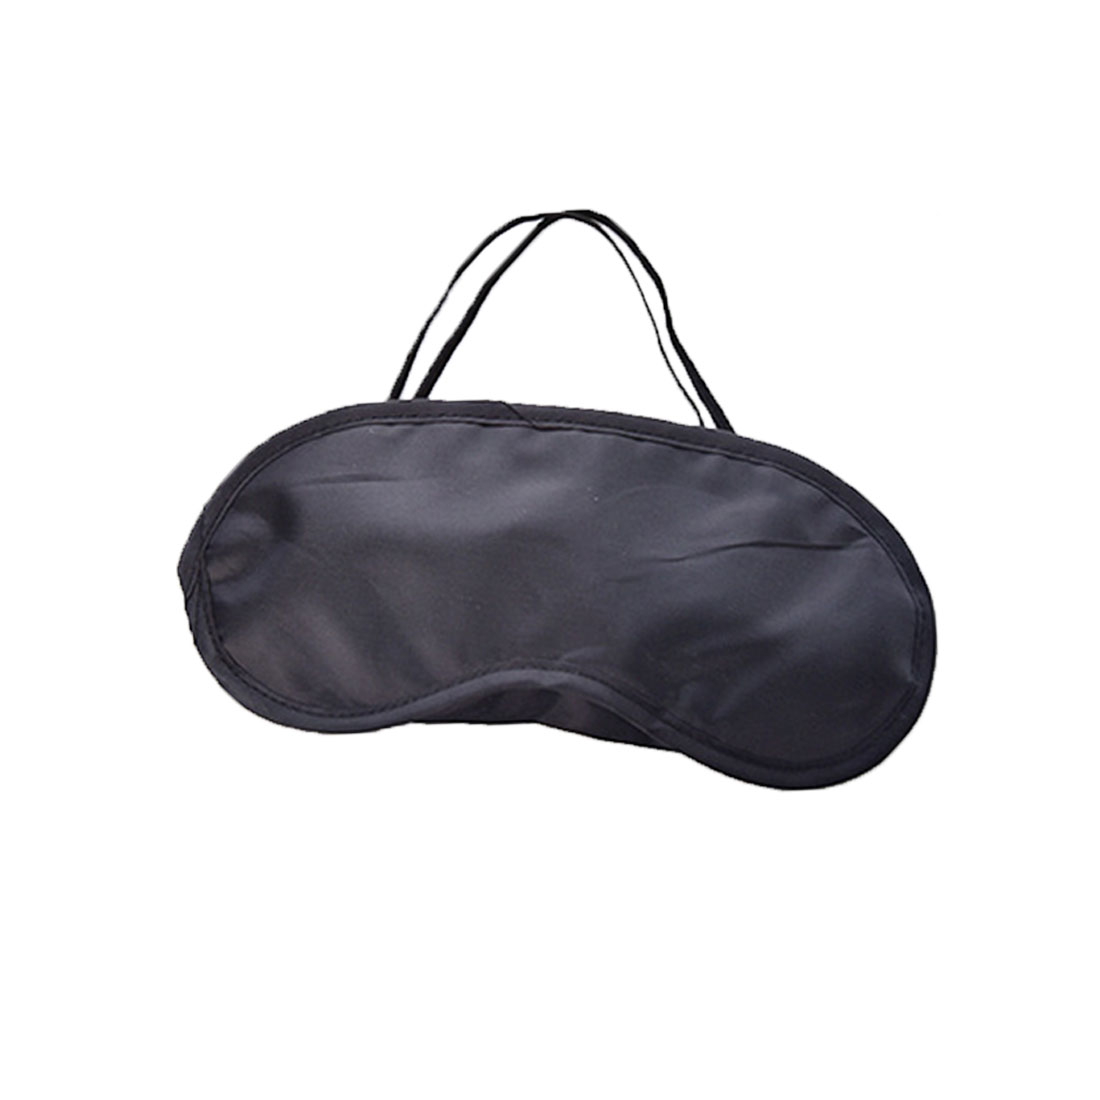 1pcs Pure Silk Sleep Eye Mask Padded Shade Cover Travel Relax Aid Non-woven Sleep eye mask 4